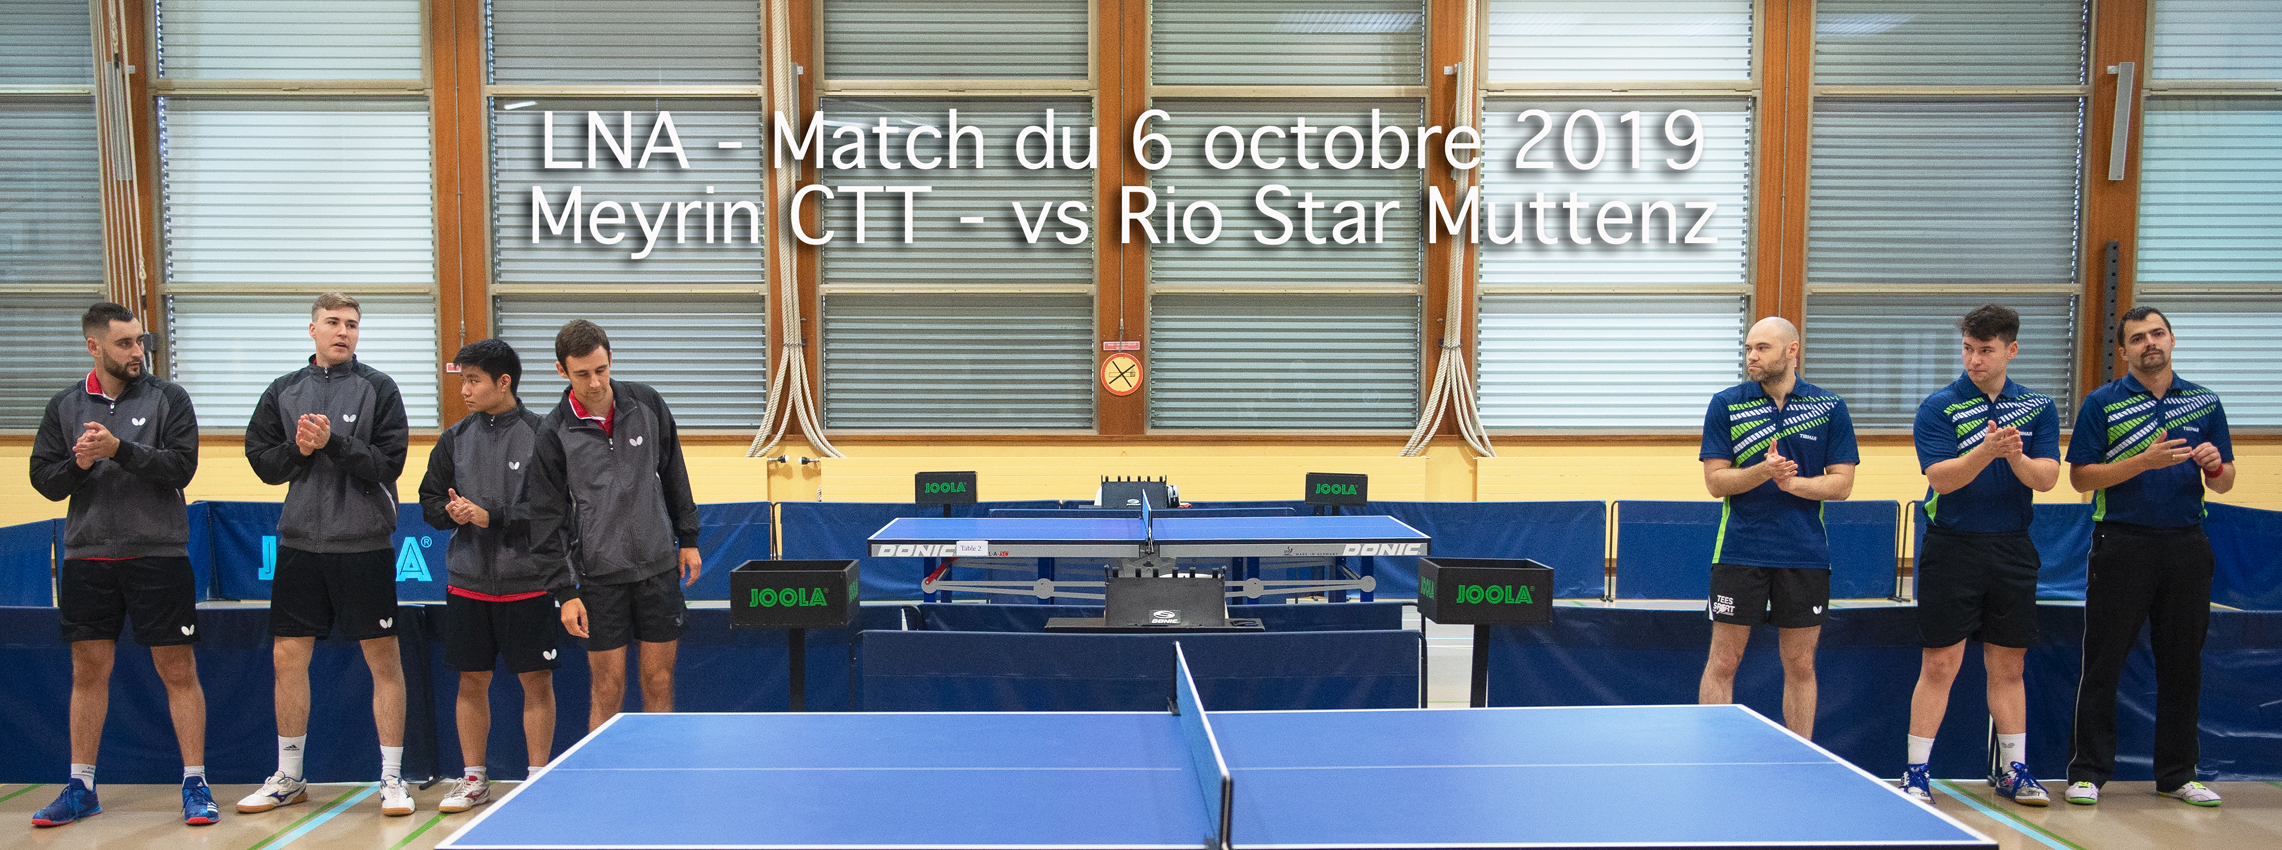 LNA - 2019-2020 - 6 octobre 2019 - Match Meyrin CTT - Rio Star Muttenz